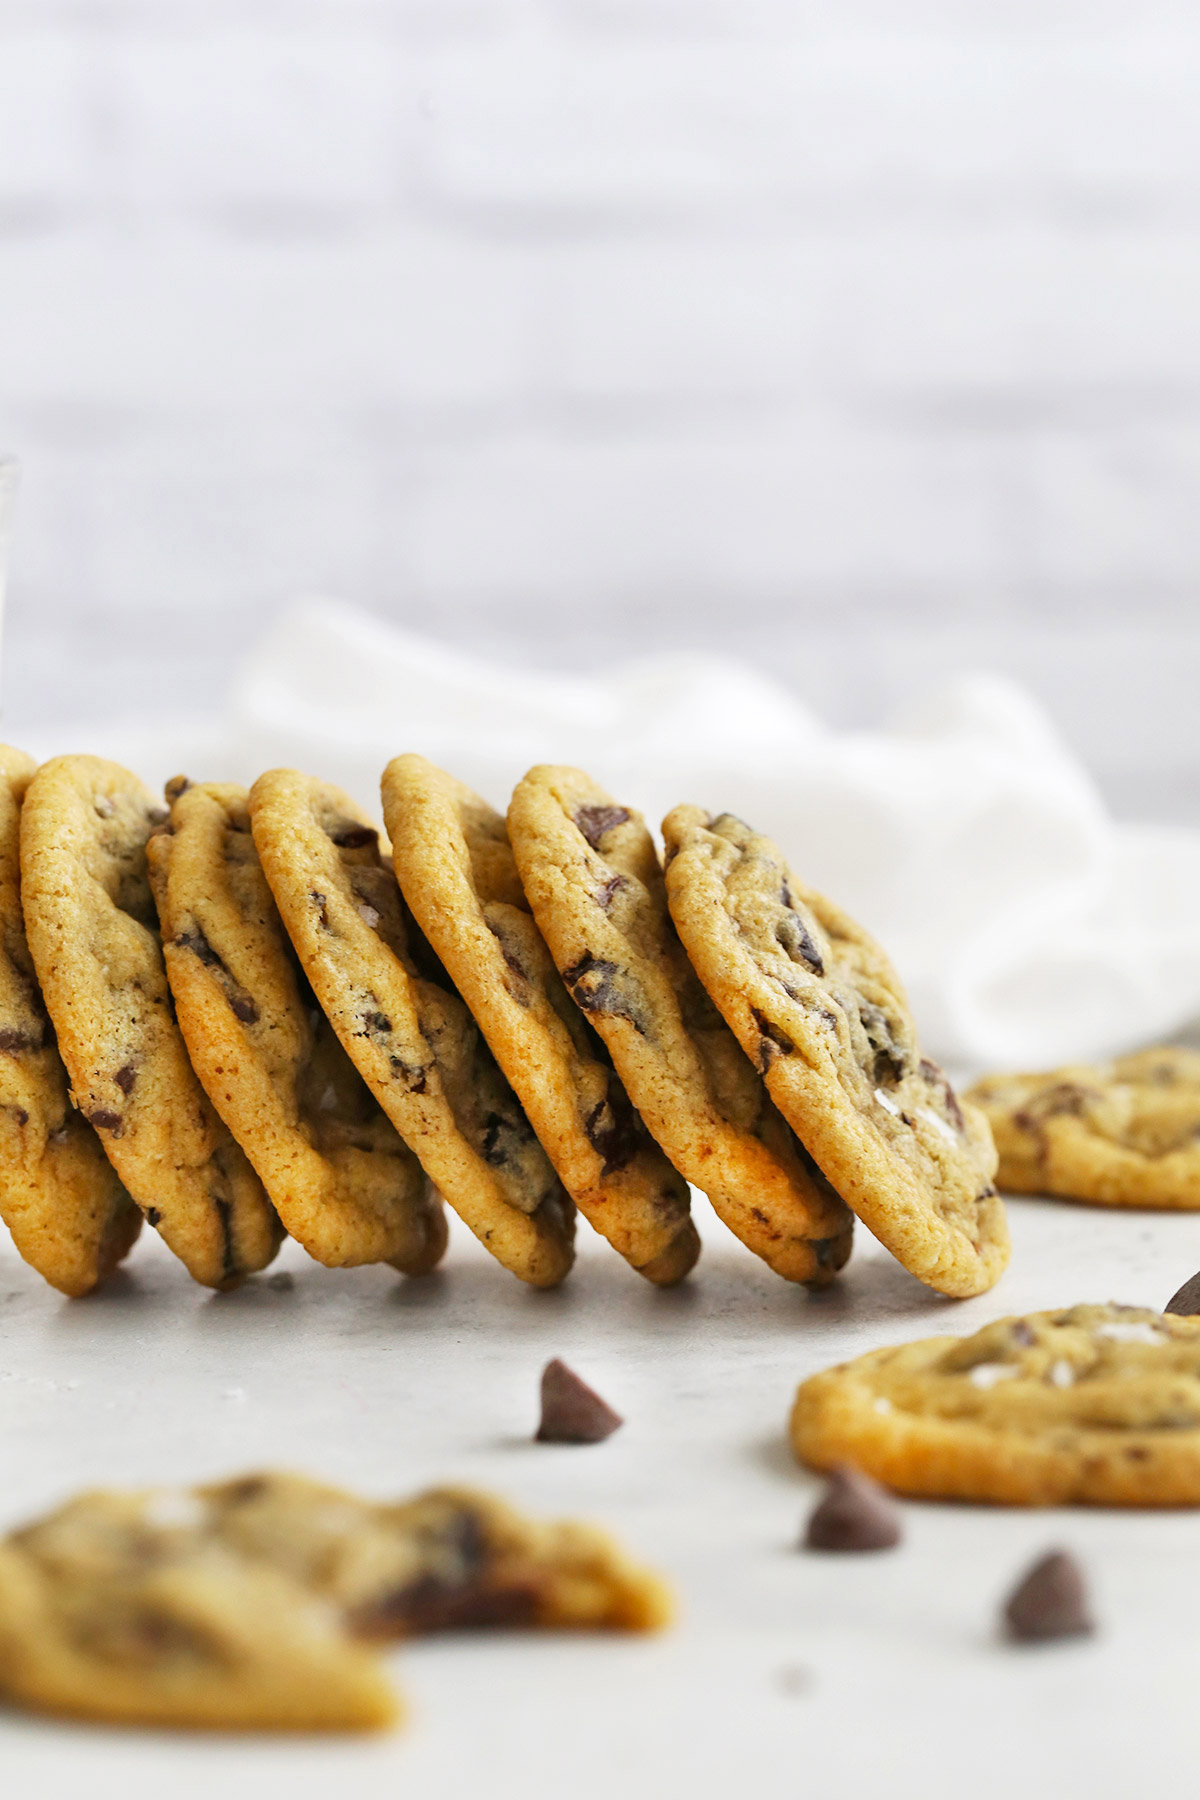 Gluten-Free Chocolate Chip Cookies leaning on each other with a white background